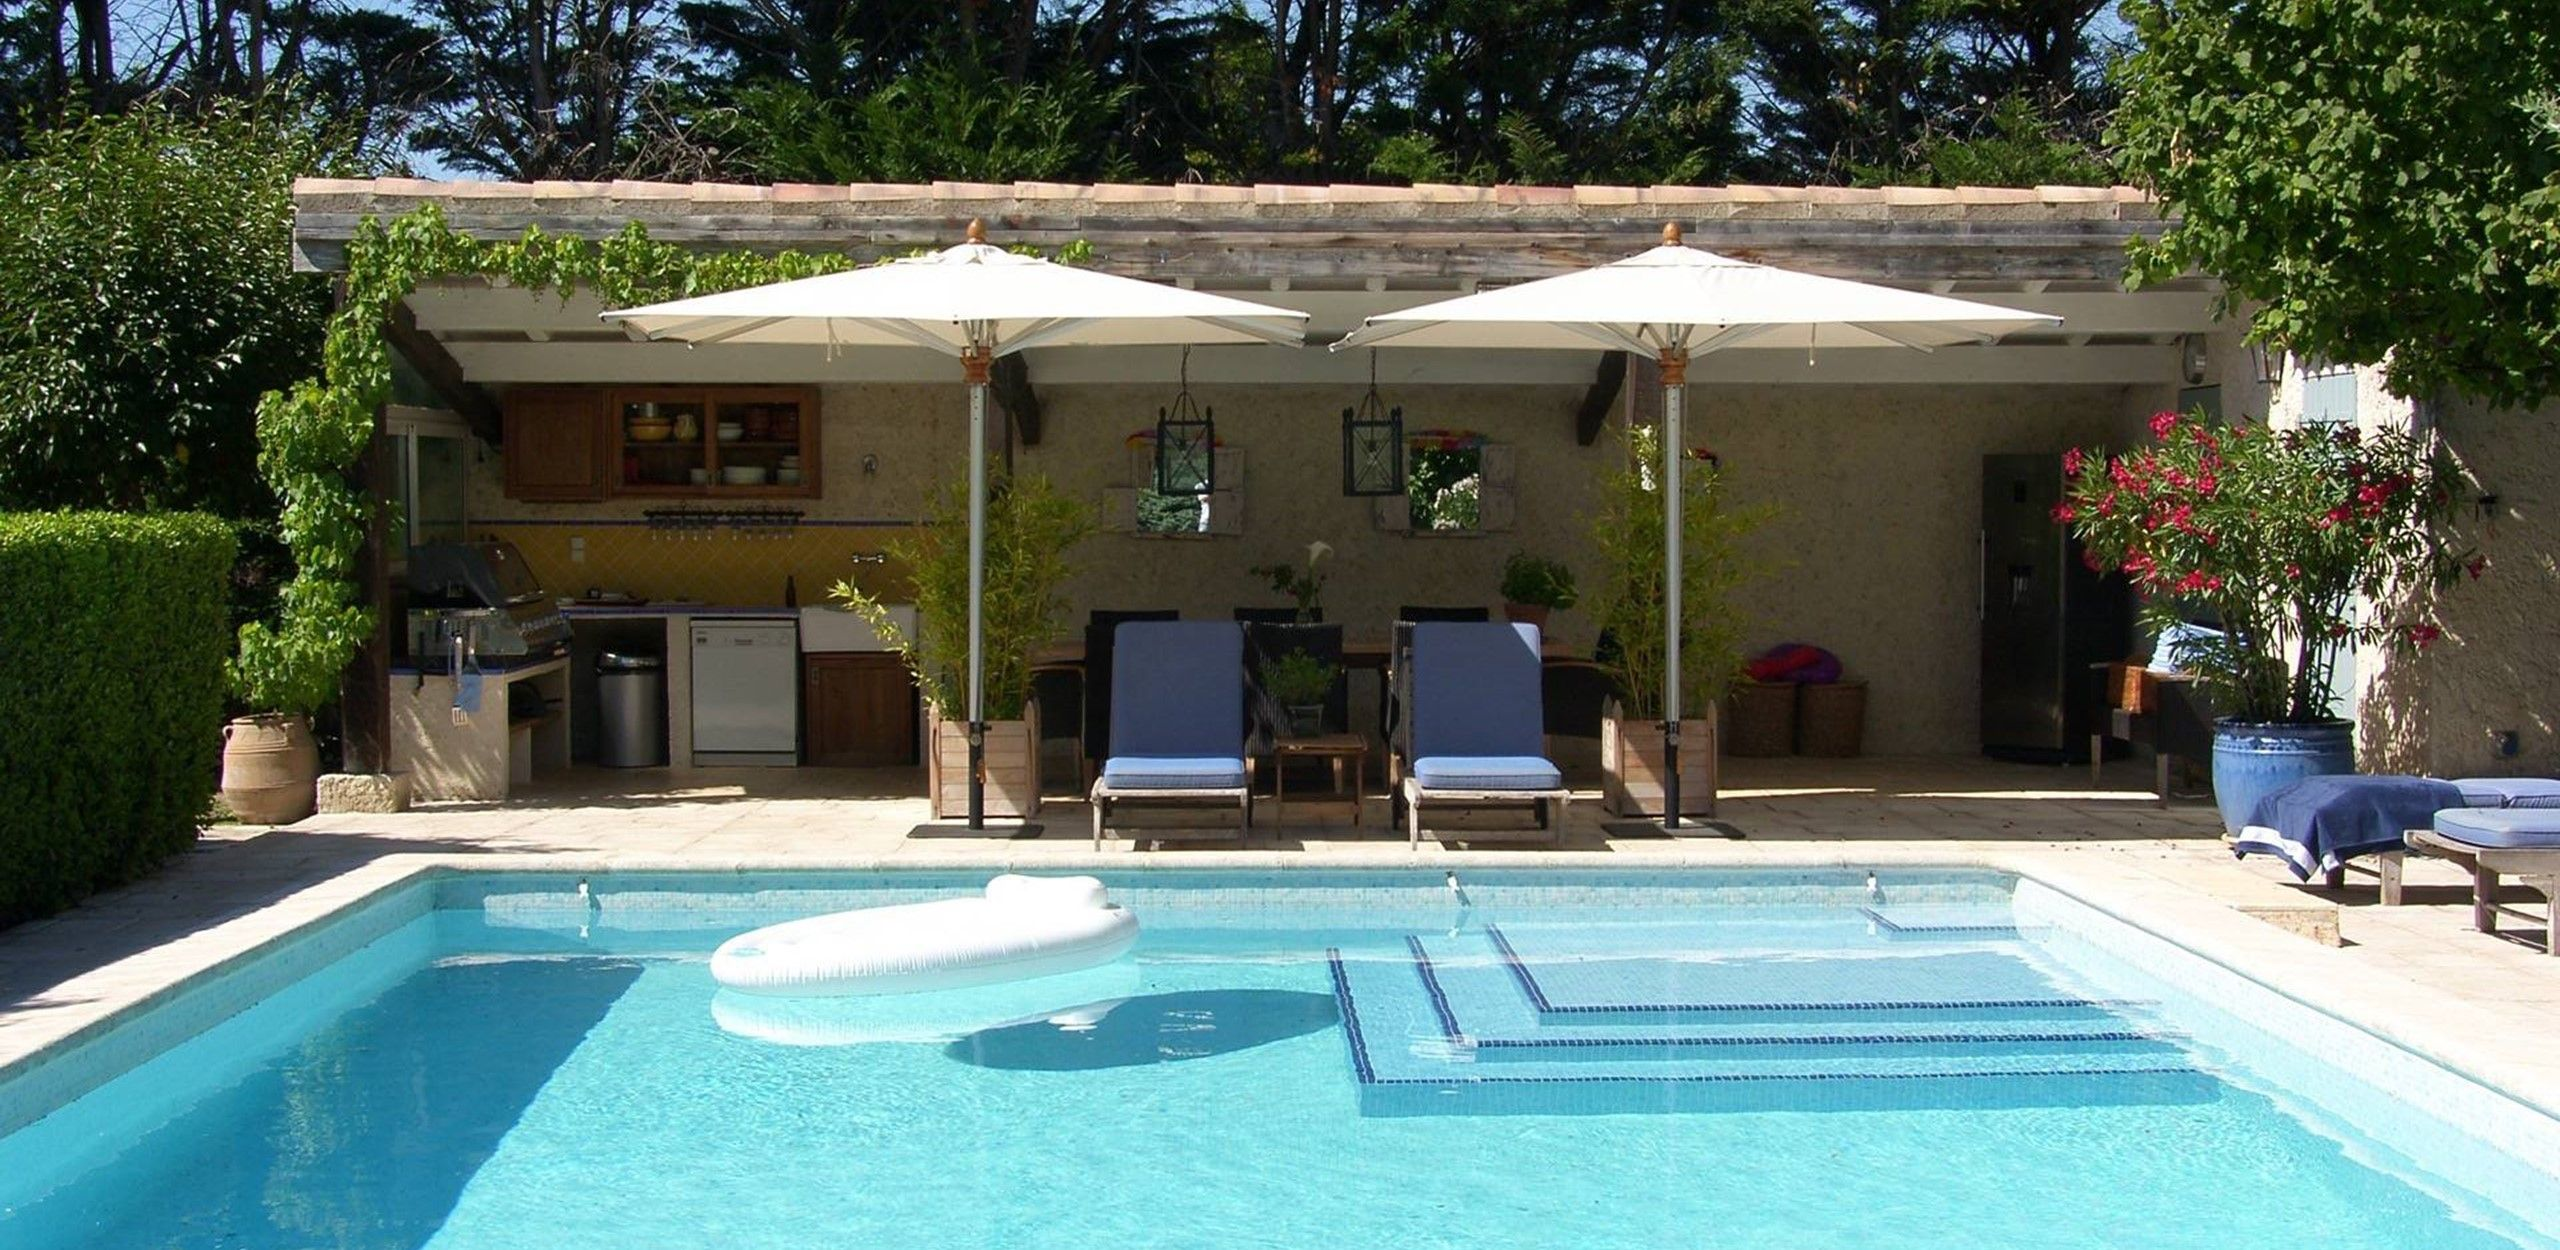 Cabannes noves provence villa rental pool house france small luxury hotels provence france - Photos pool house piscine ...